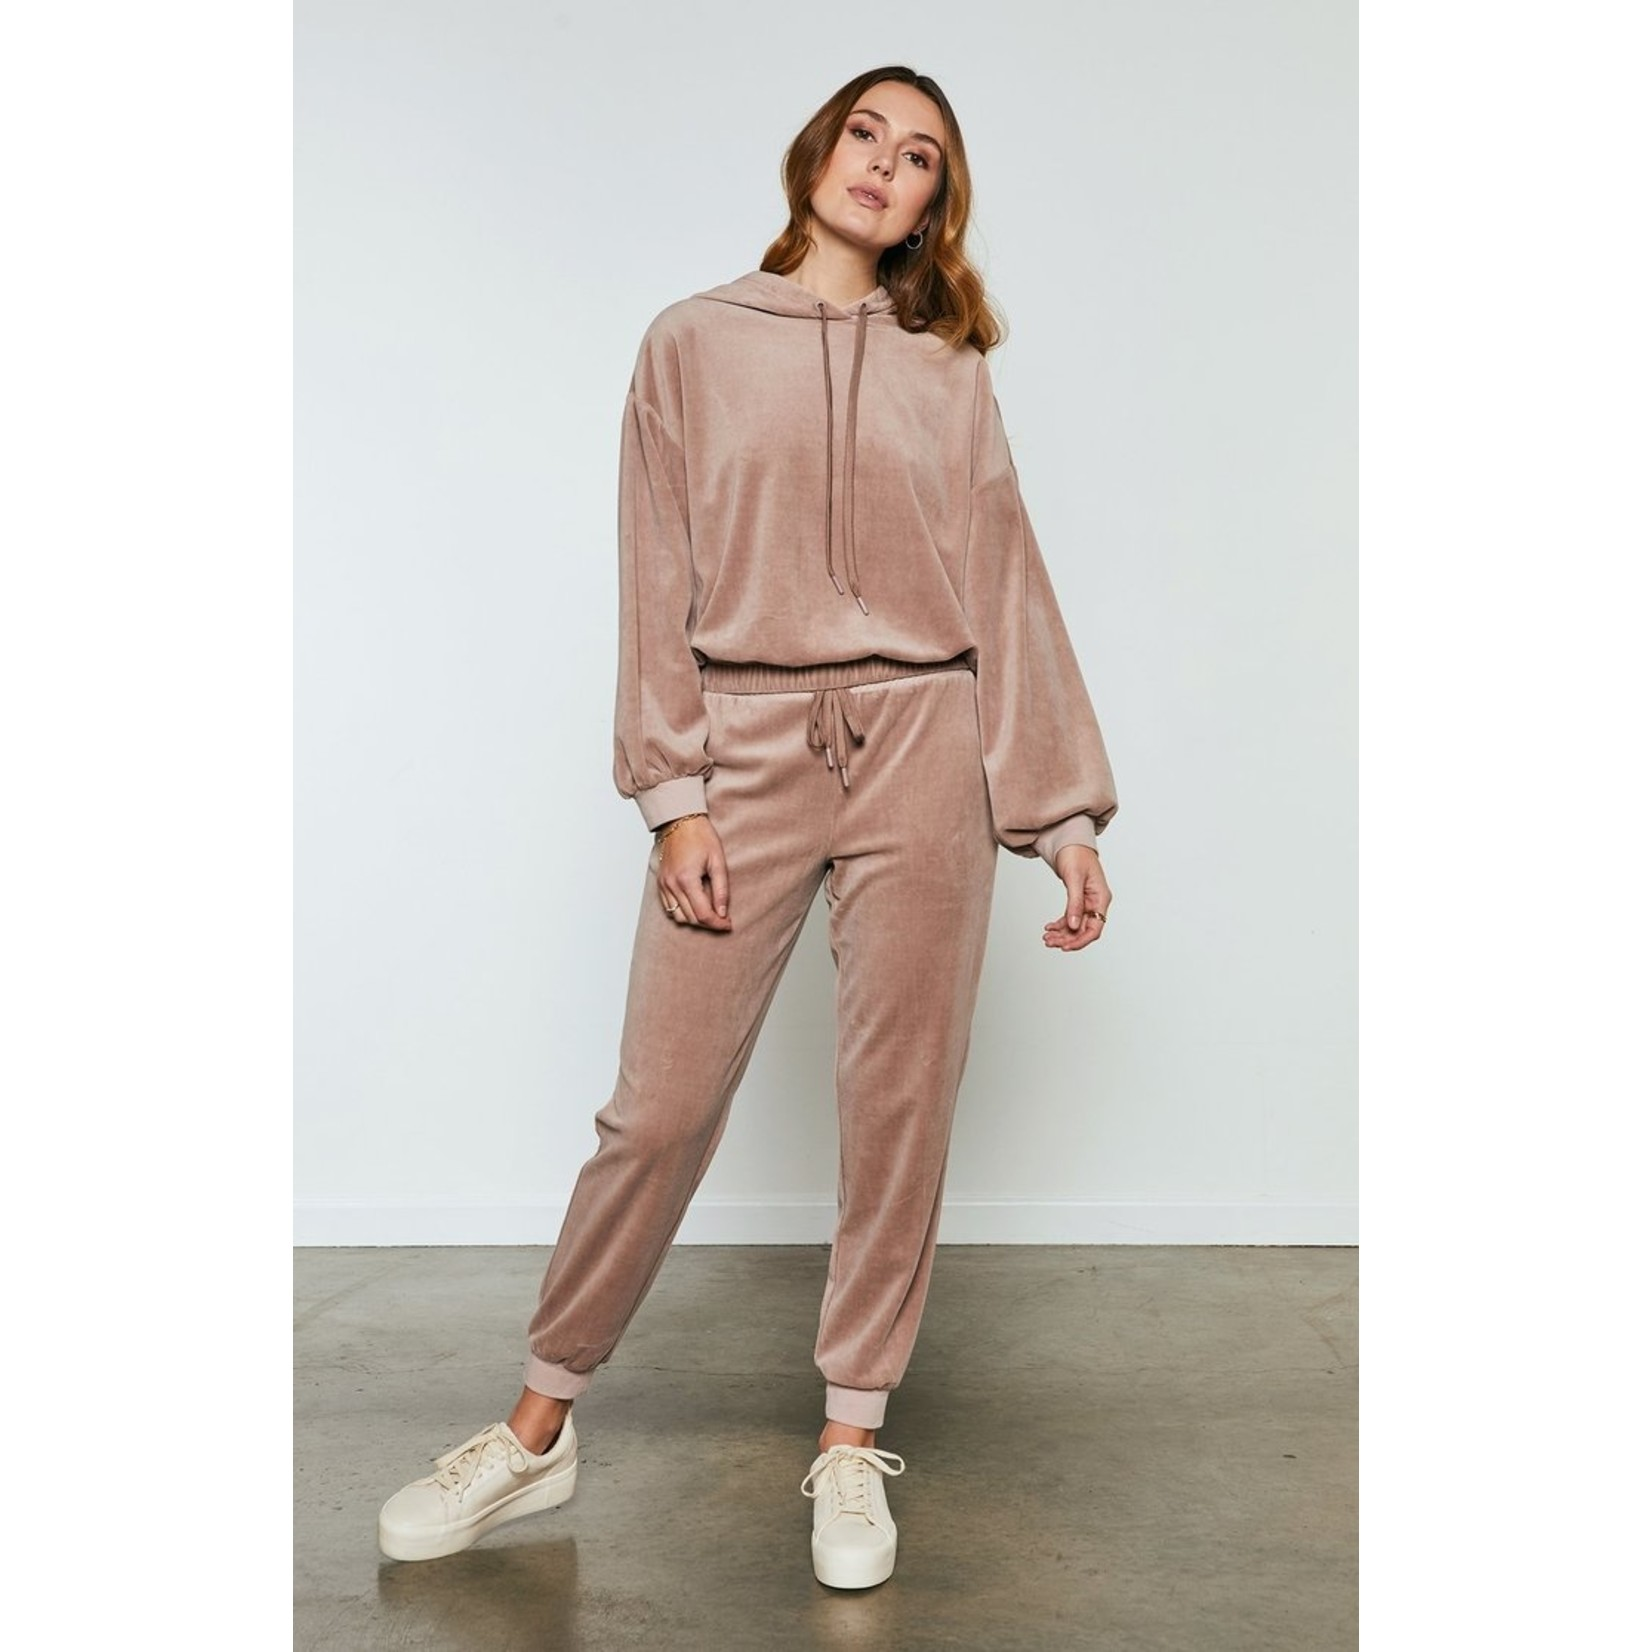 GENTLE FAWN RITZ JOGGER PANT